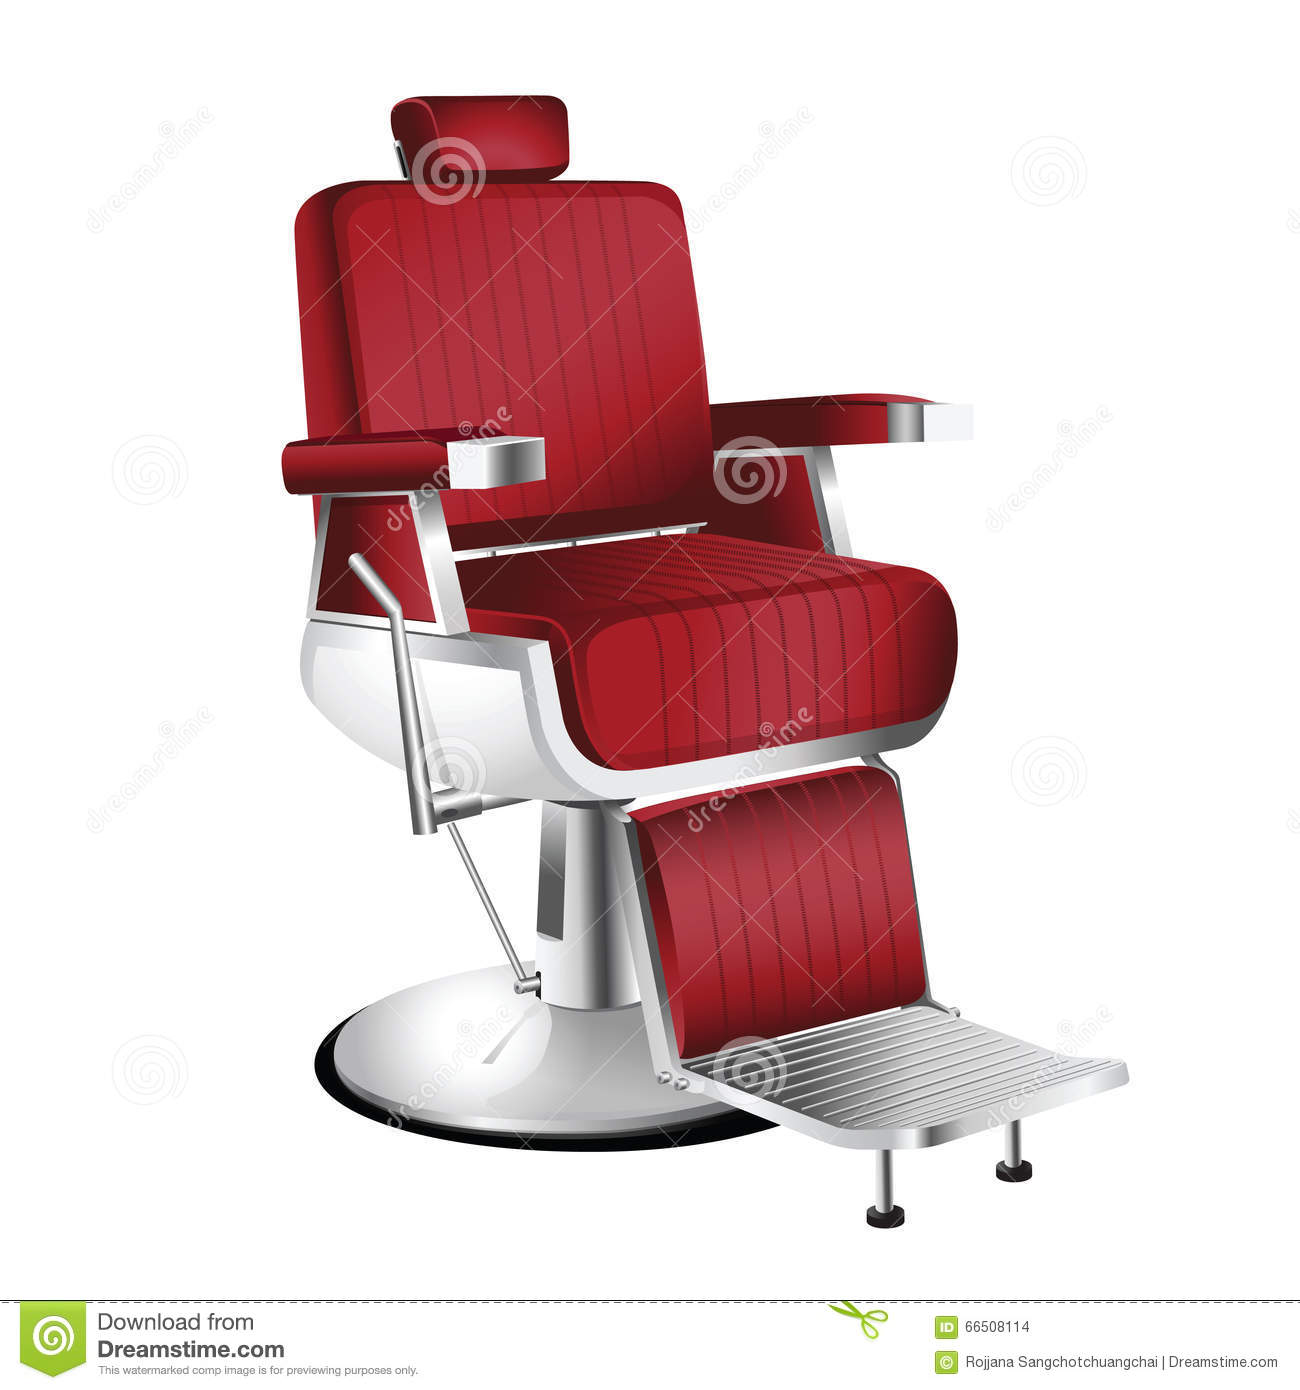 Barber chair vector - Red Barber Chair